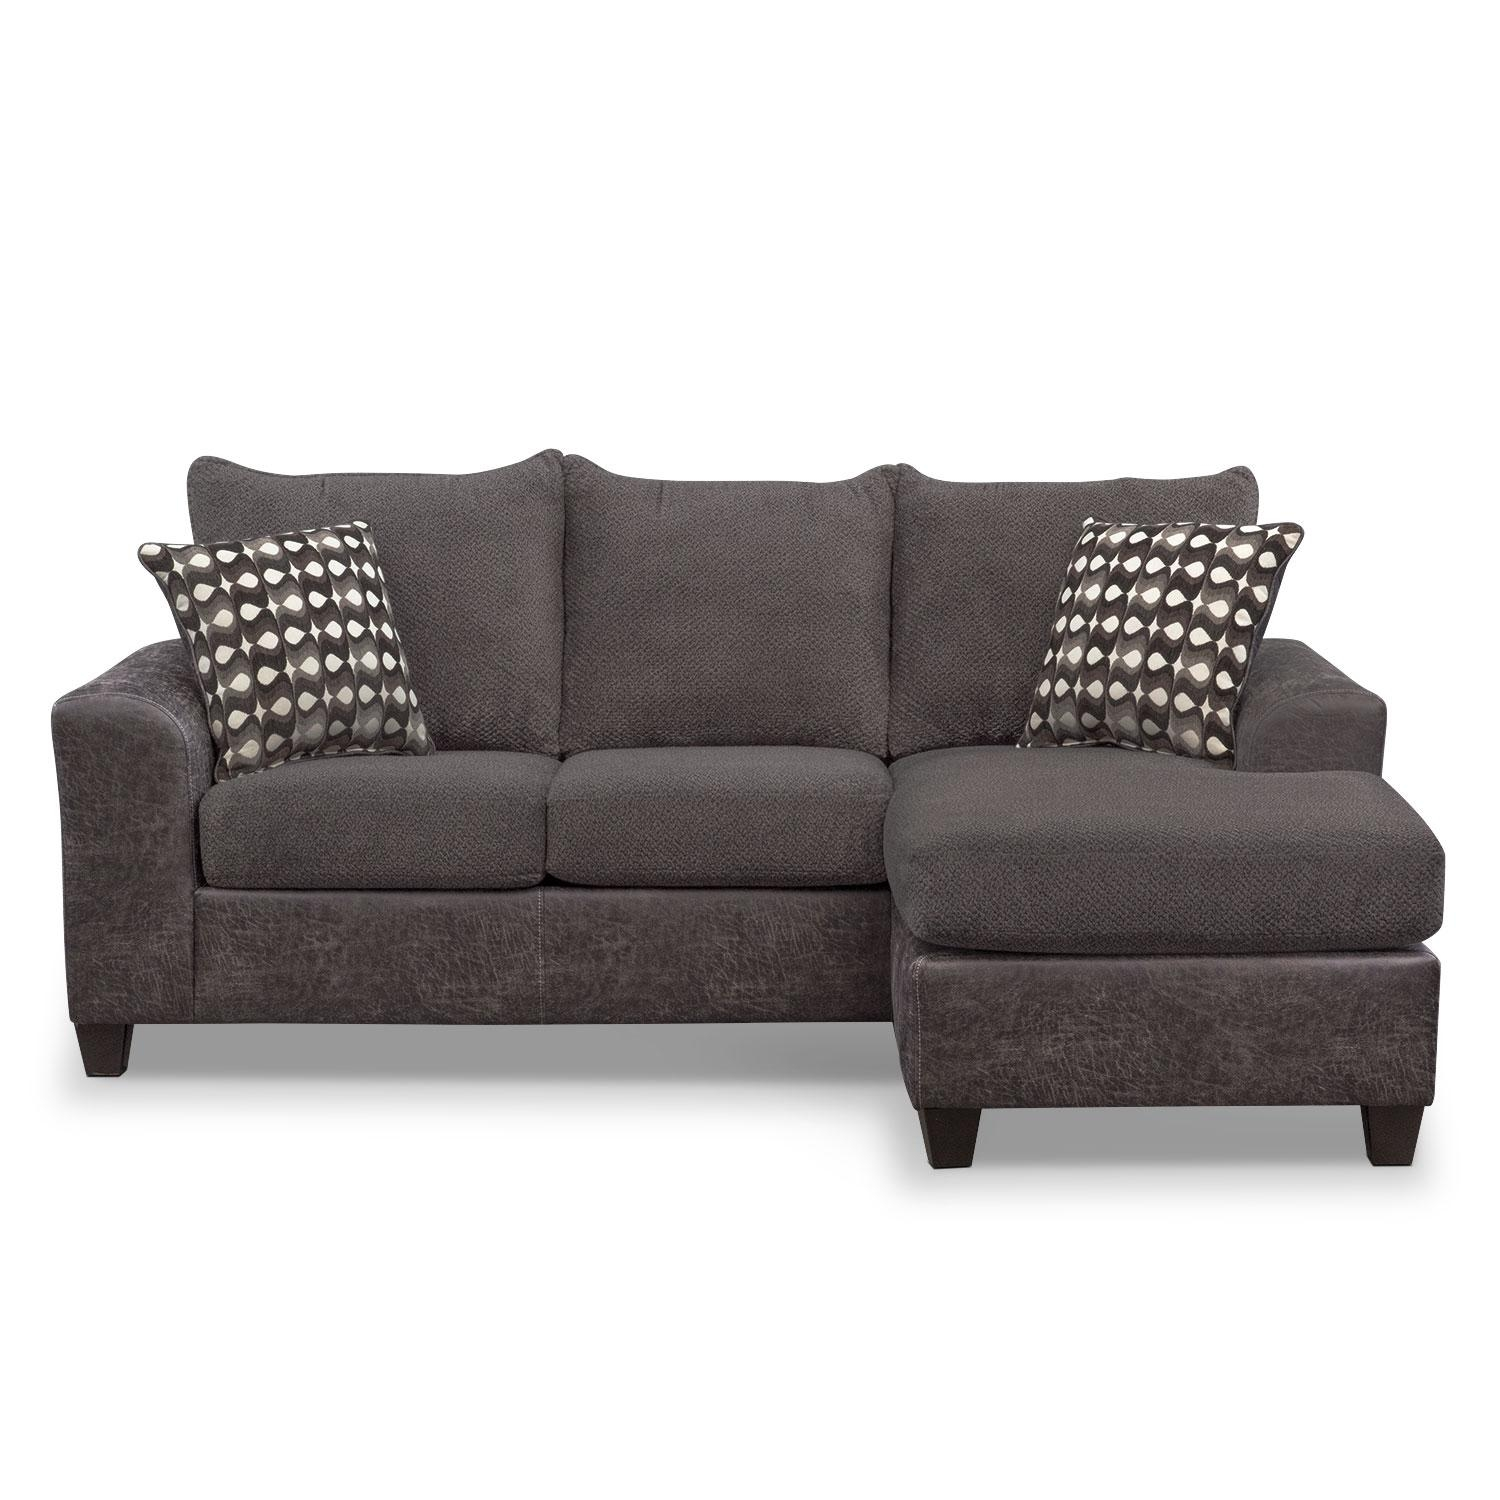 Brando Sofa With Chaise – Smoke | Value City Furniture Intended For Chaise Sofas (View 16 of 20)